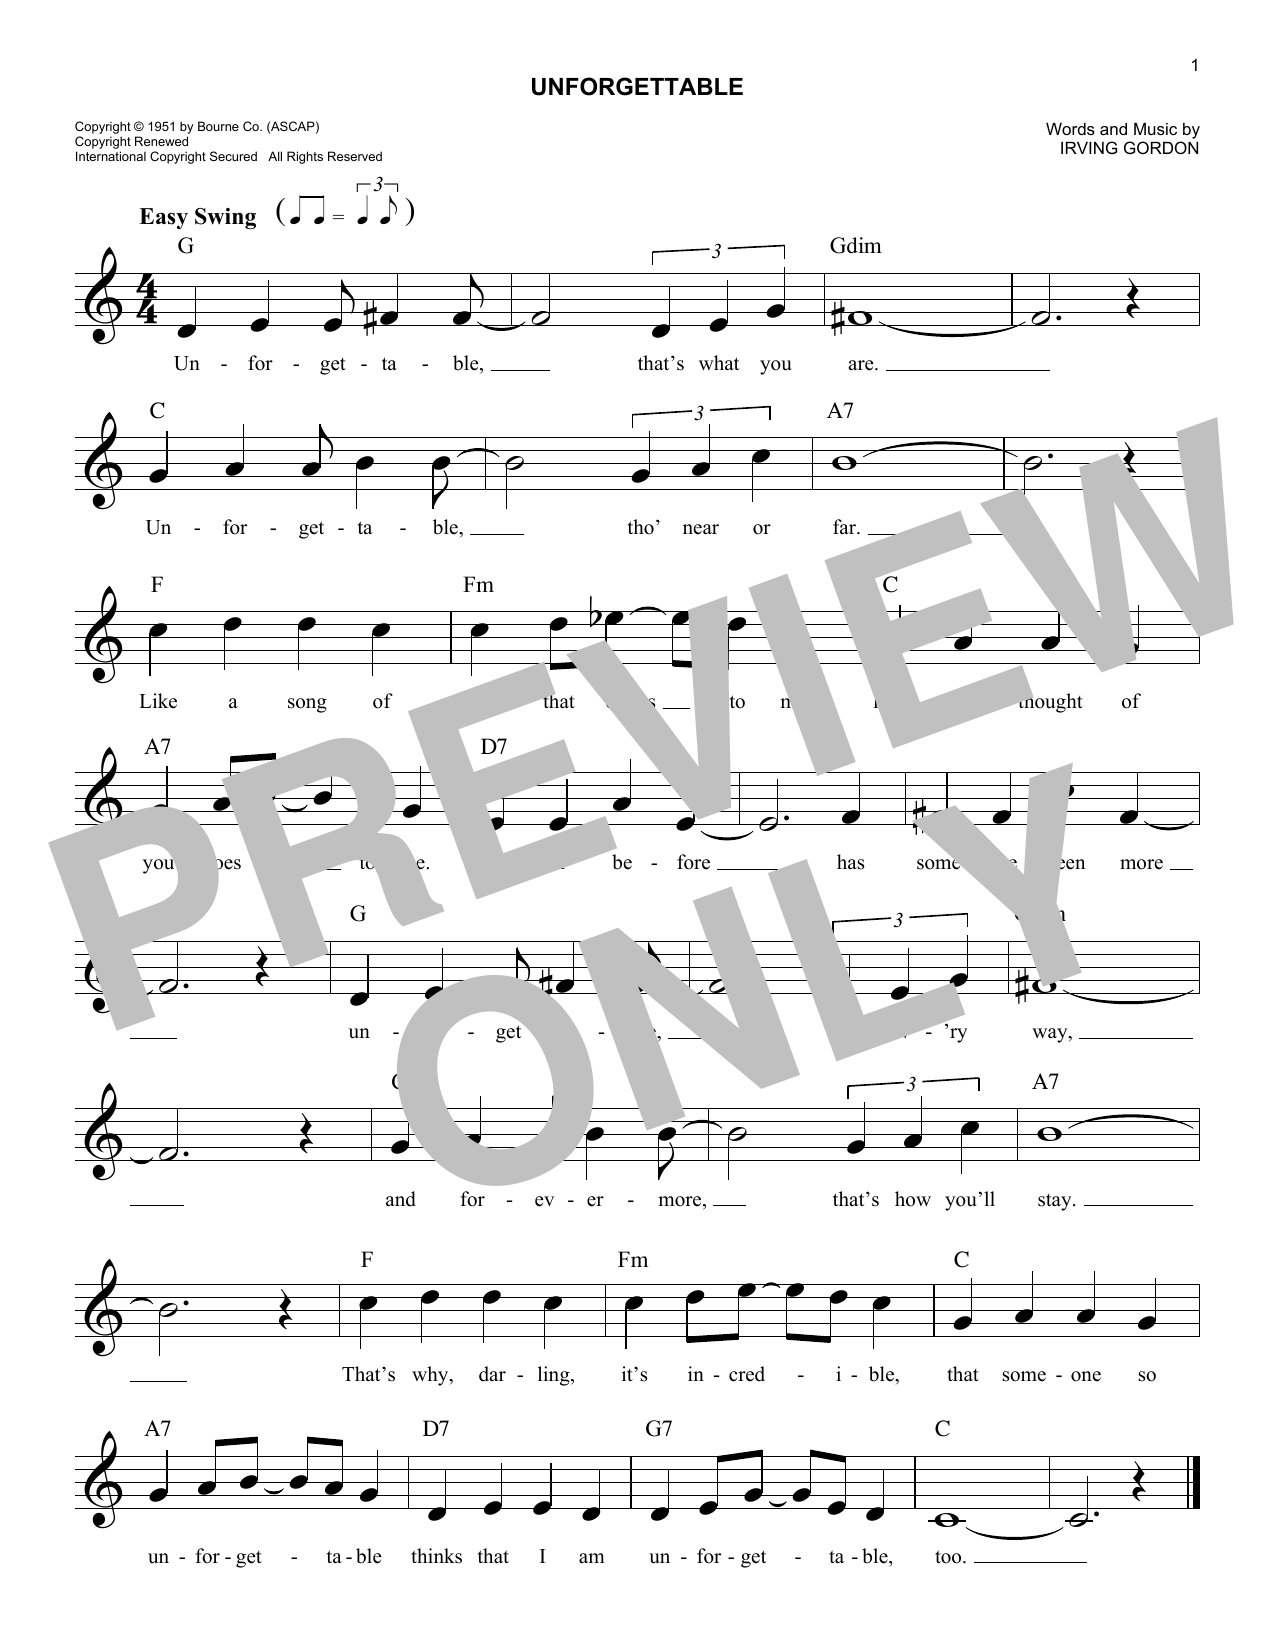 Sheet Music Digital Files To Print Licensed Natalie Cole Digital